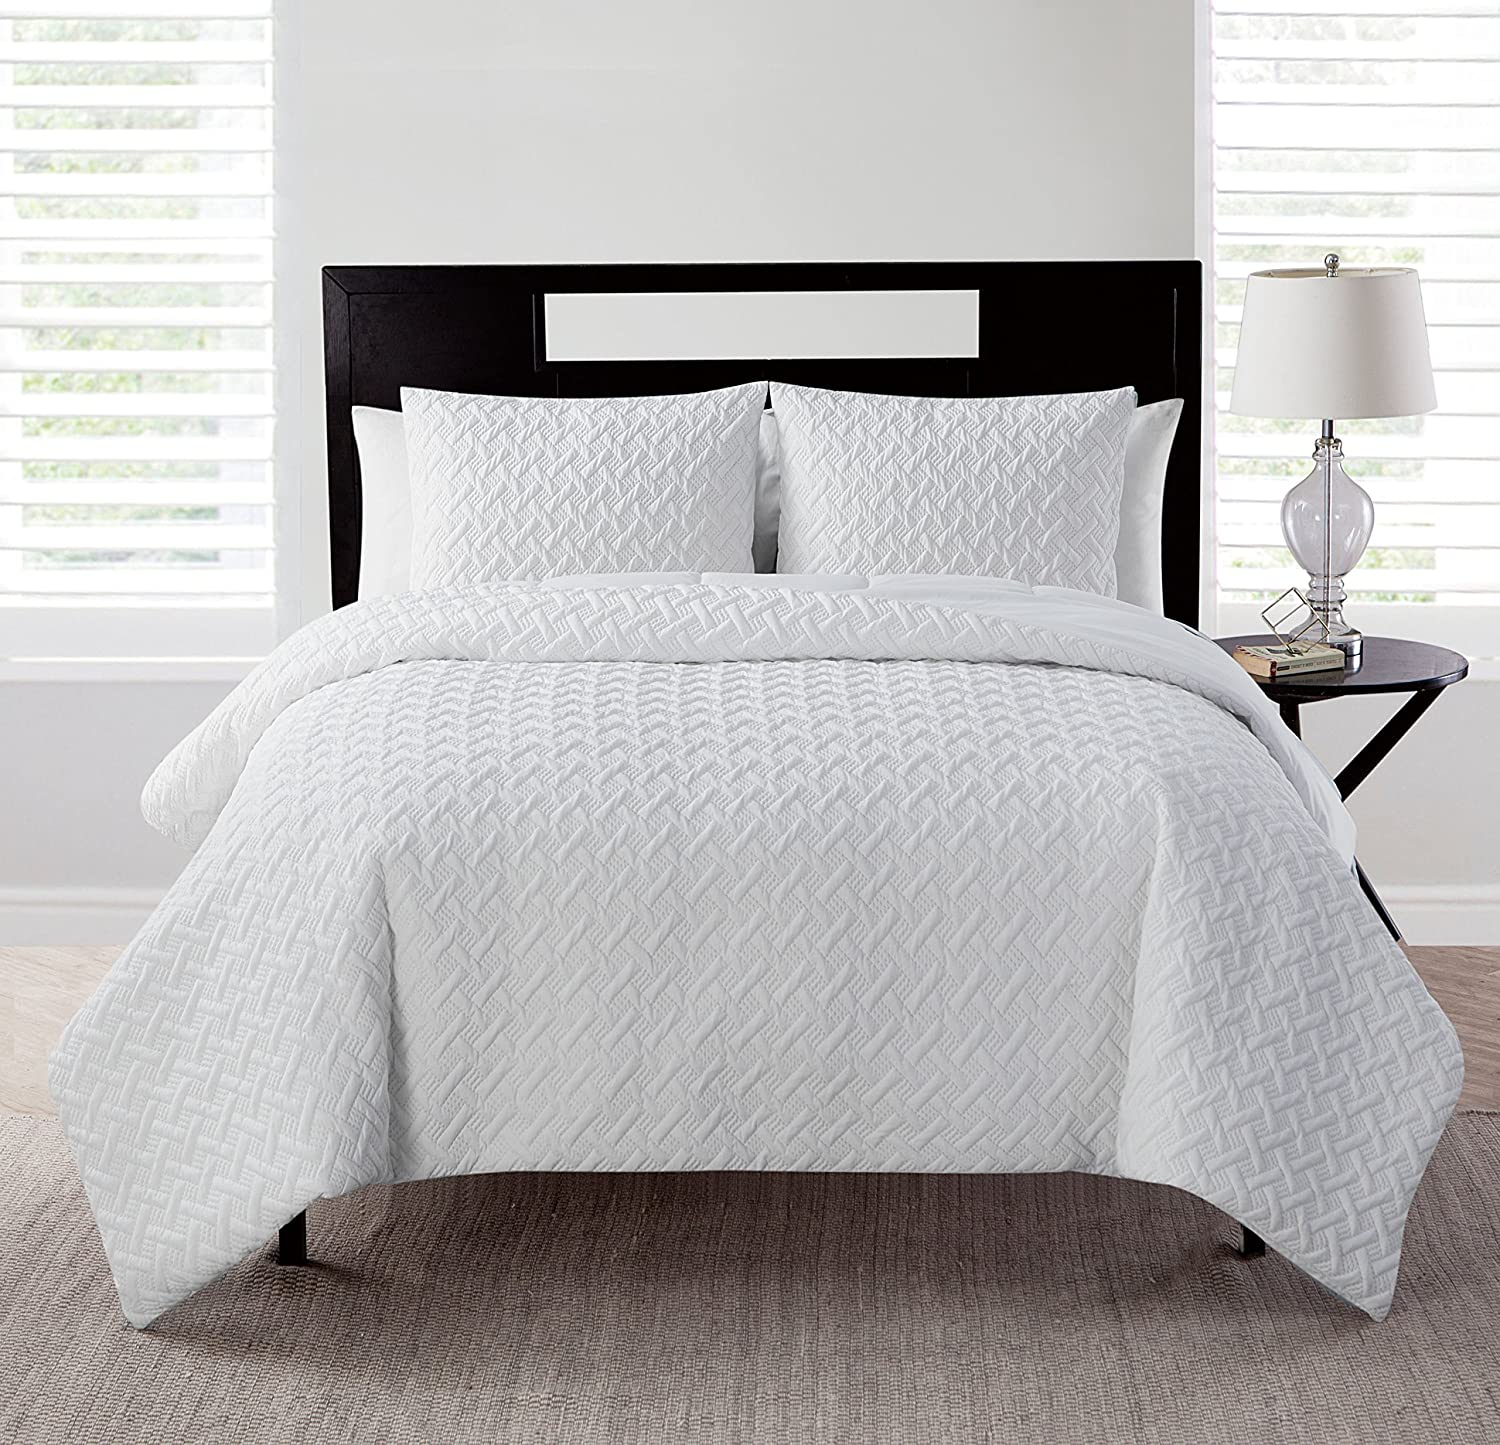 VCNY Home Nina Textured Geometric 3-Piece Solid Quilt Set, Full/Queen, Names Nina Comforter Home Designs on